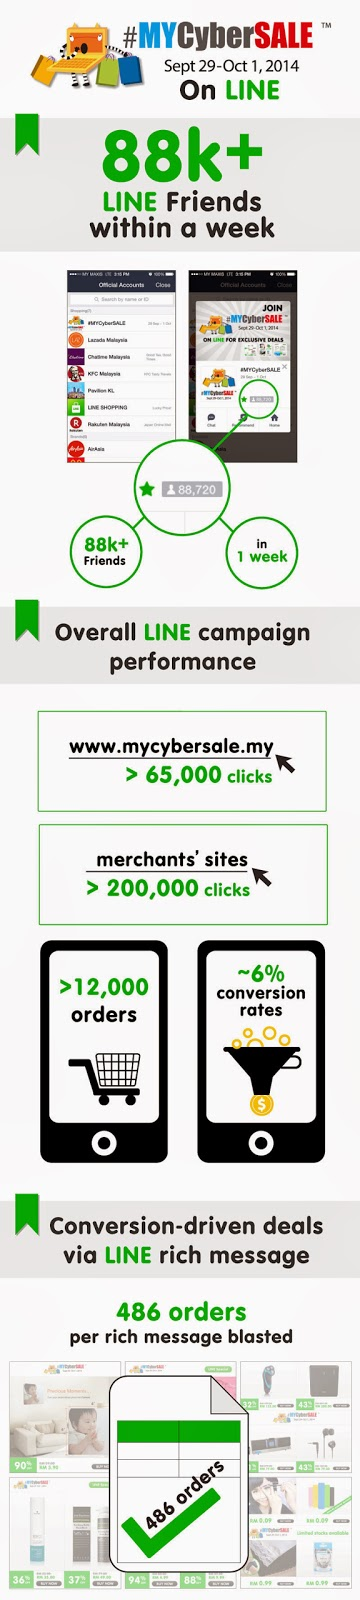 #MYCyberSALE LINE campaign infographic